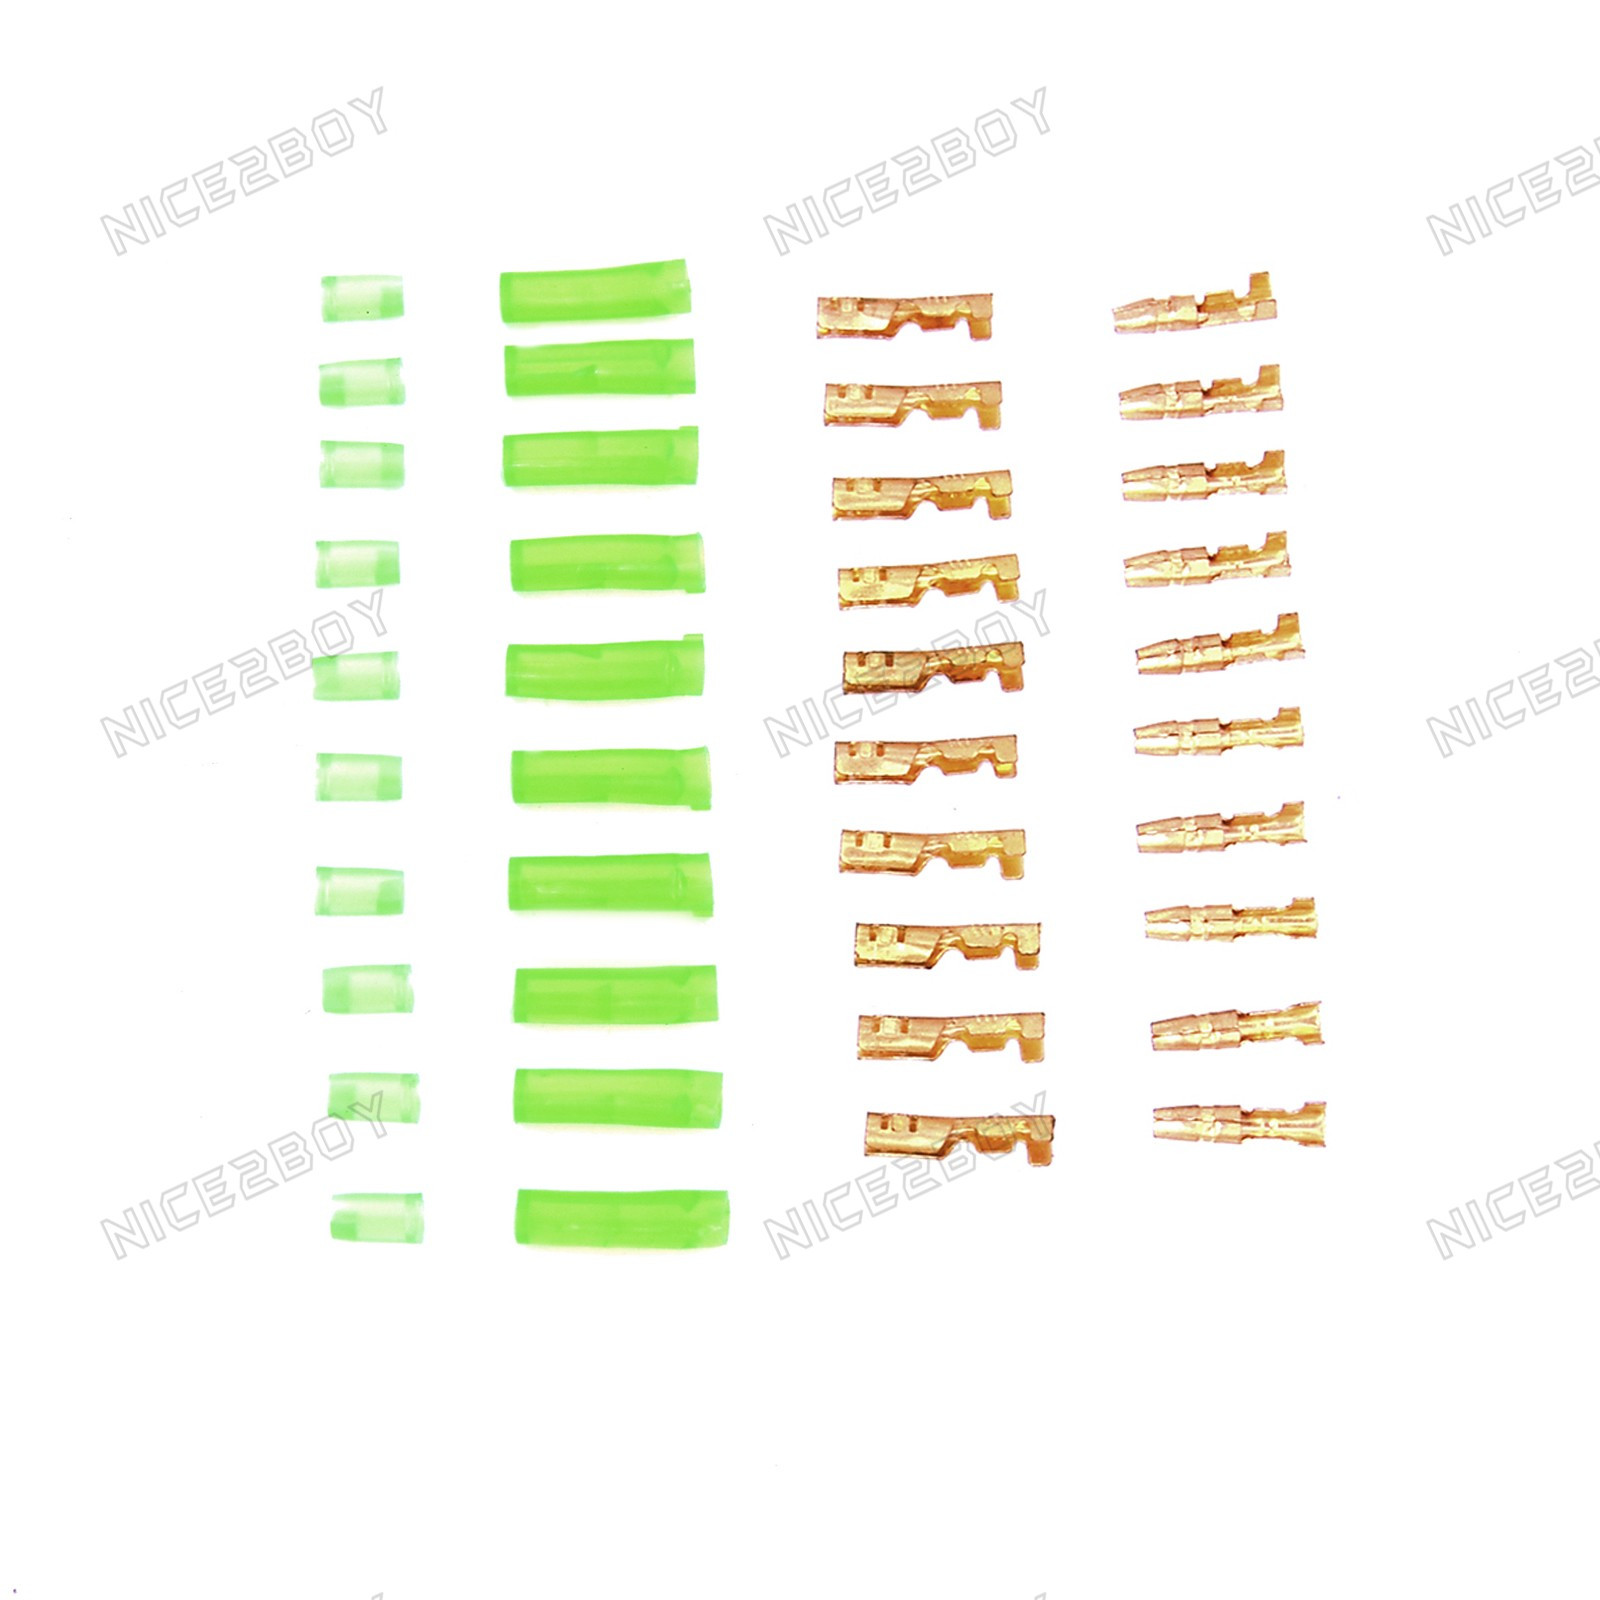 10 X 39mm Motorcycle Electrical Wiring Harness Loom Brass Bullet Clipart Connectors